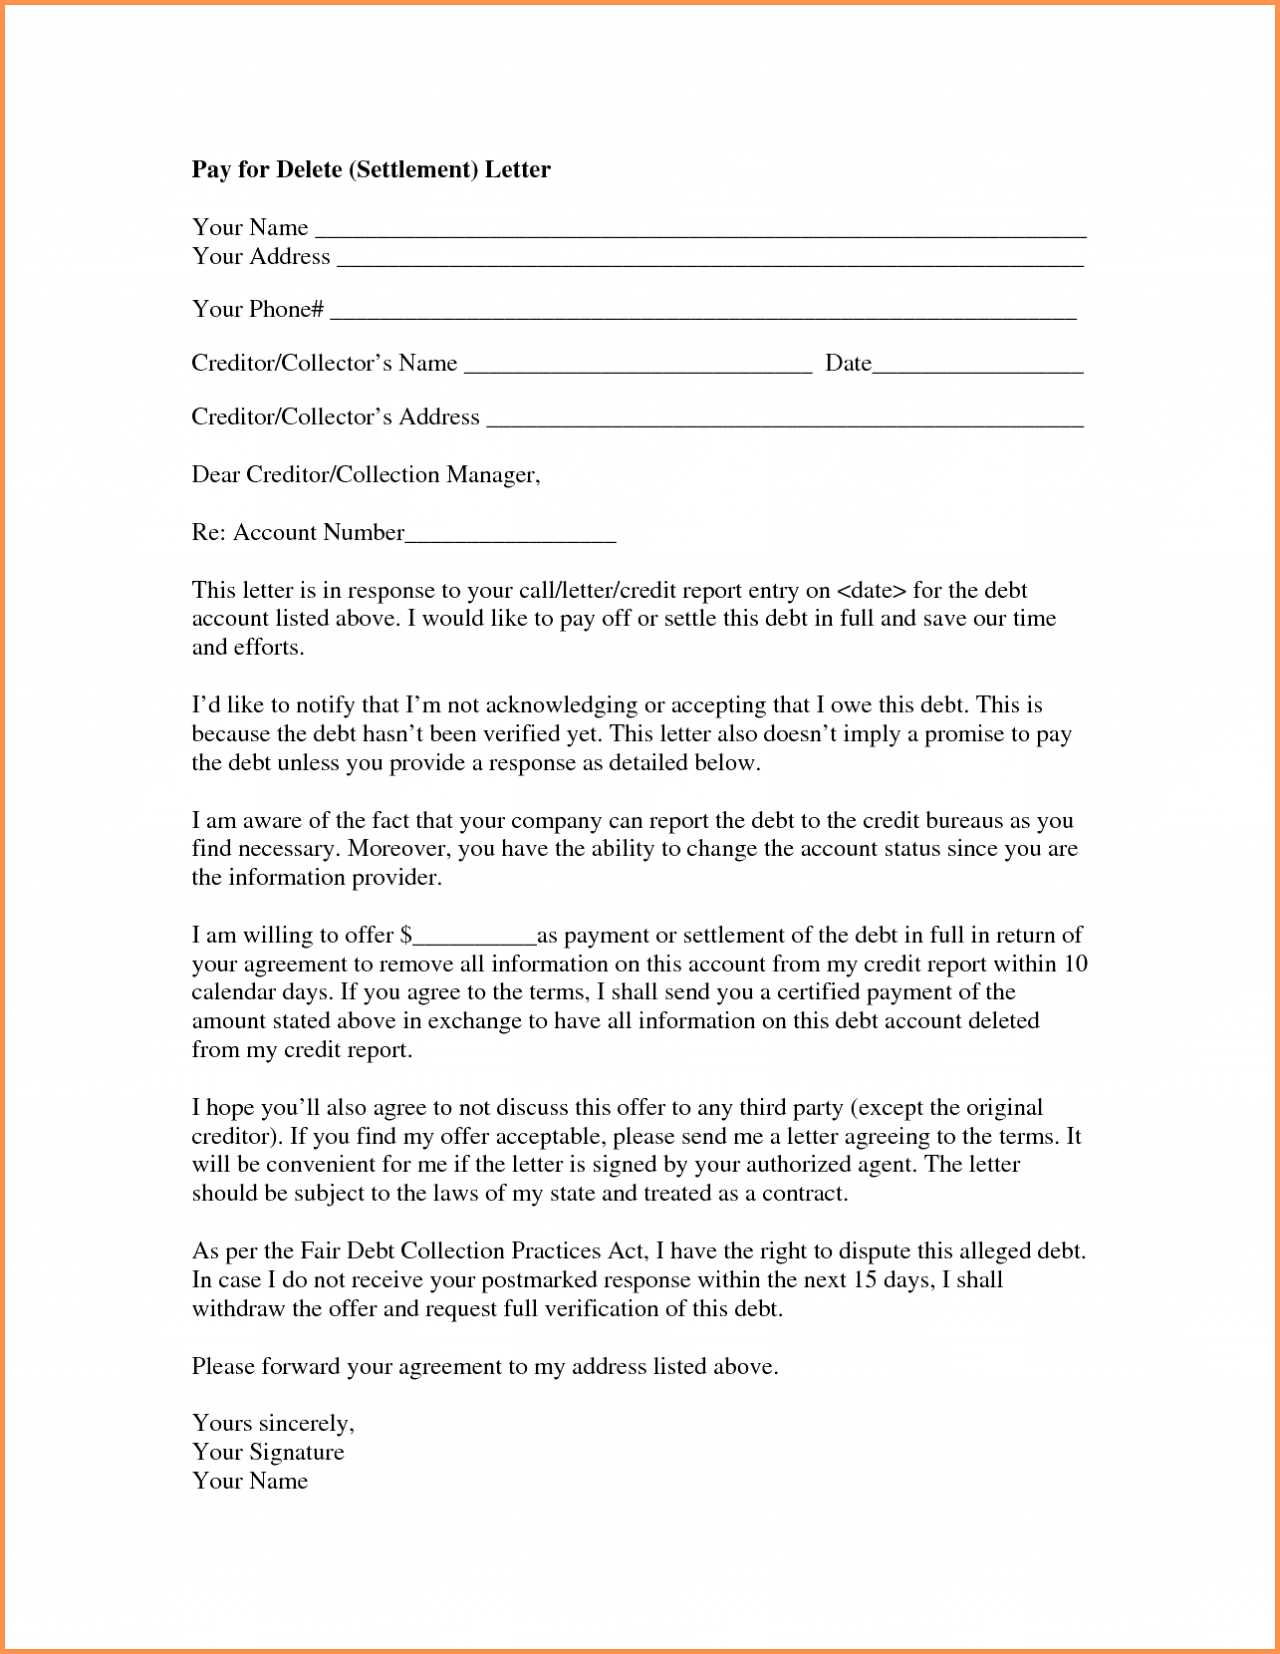 Free Section 609 Credit Dispute Letter Template - Credit Report Dispute Letter Template Also Equipment Loan Agreement